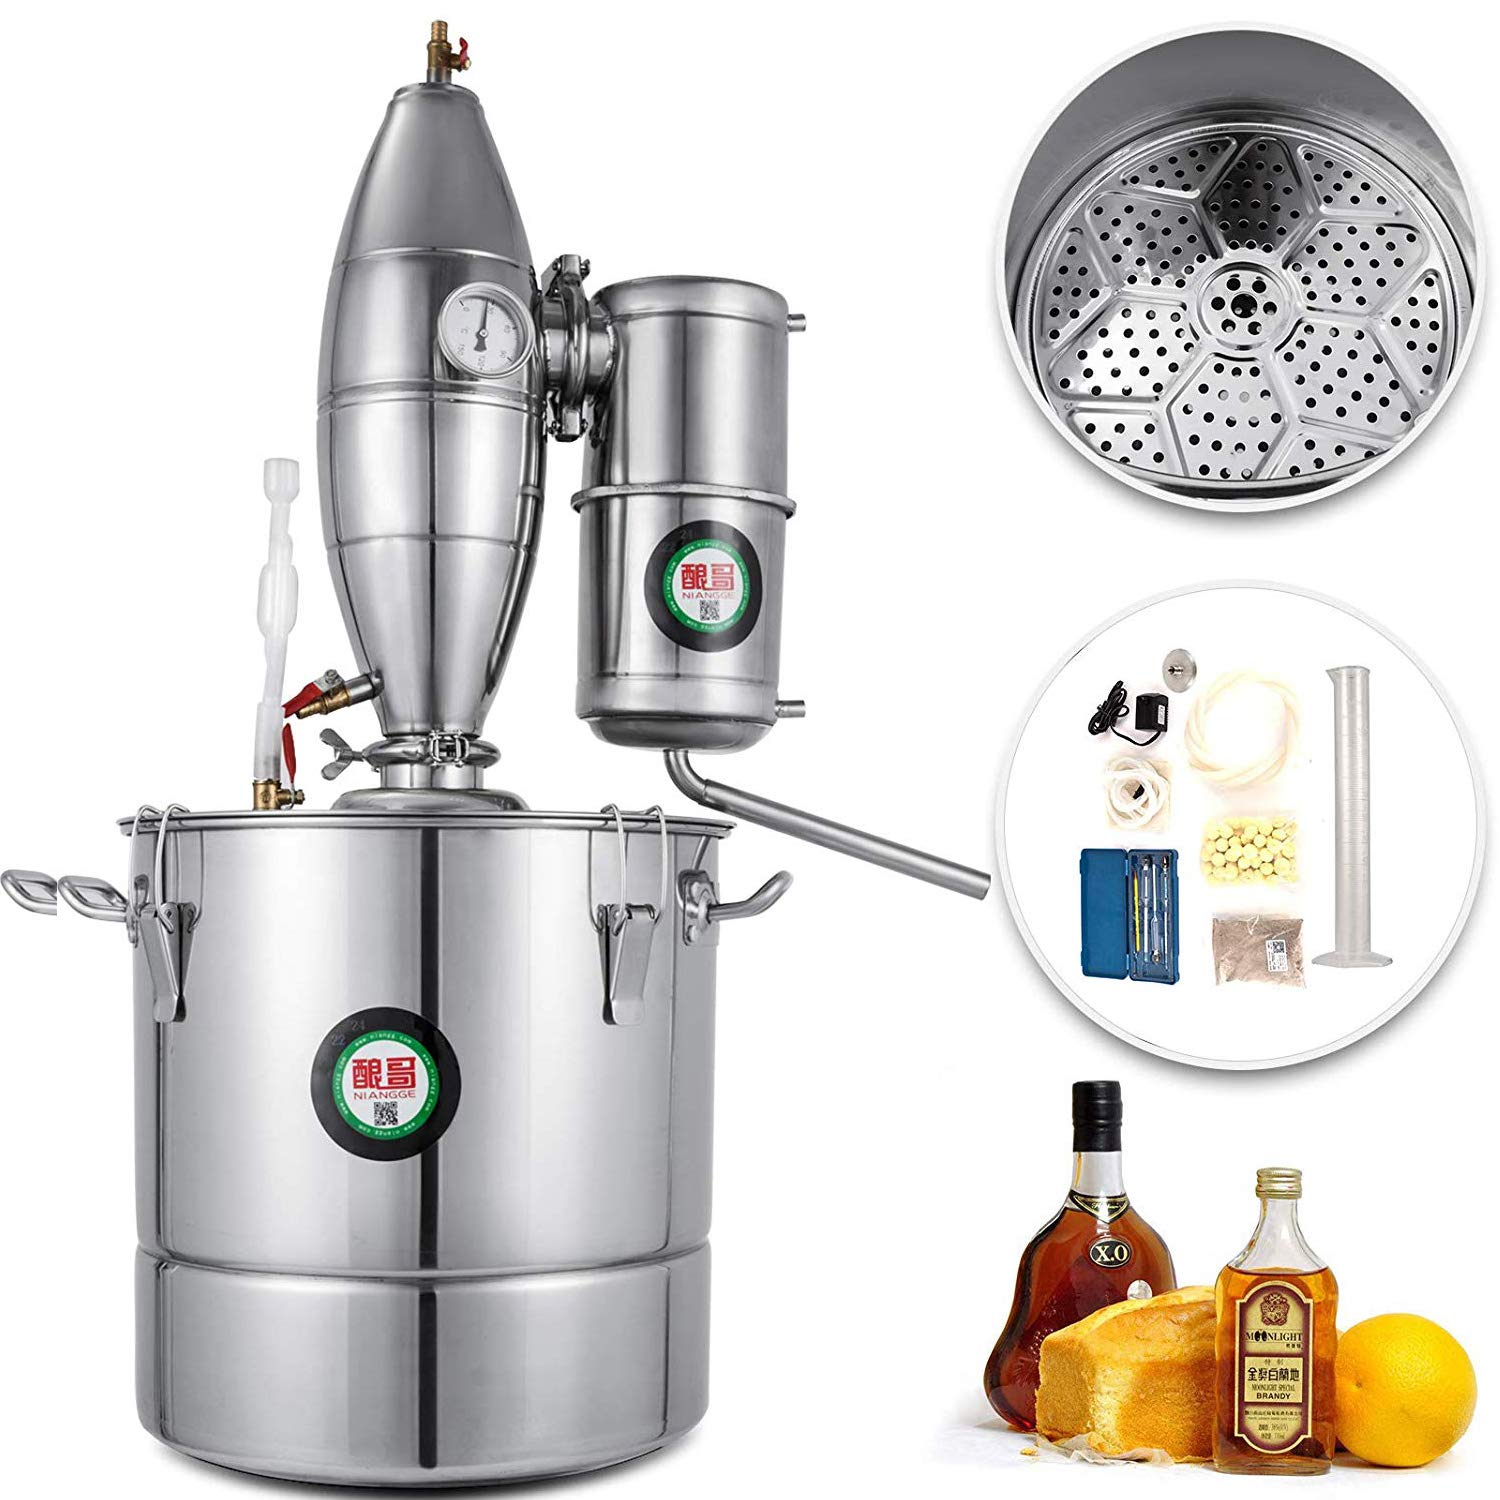 Happybuy Water Alcohol Distiller 20L/5.28Gal Alcohol Distiller Equipped with Water Pump and Thermometer Stainless Steel Wine Making Kit Home Brewing Kit